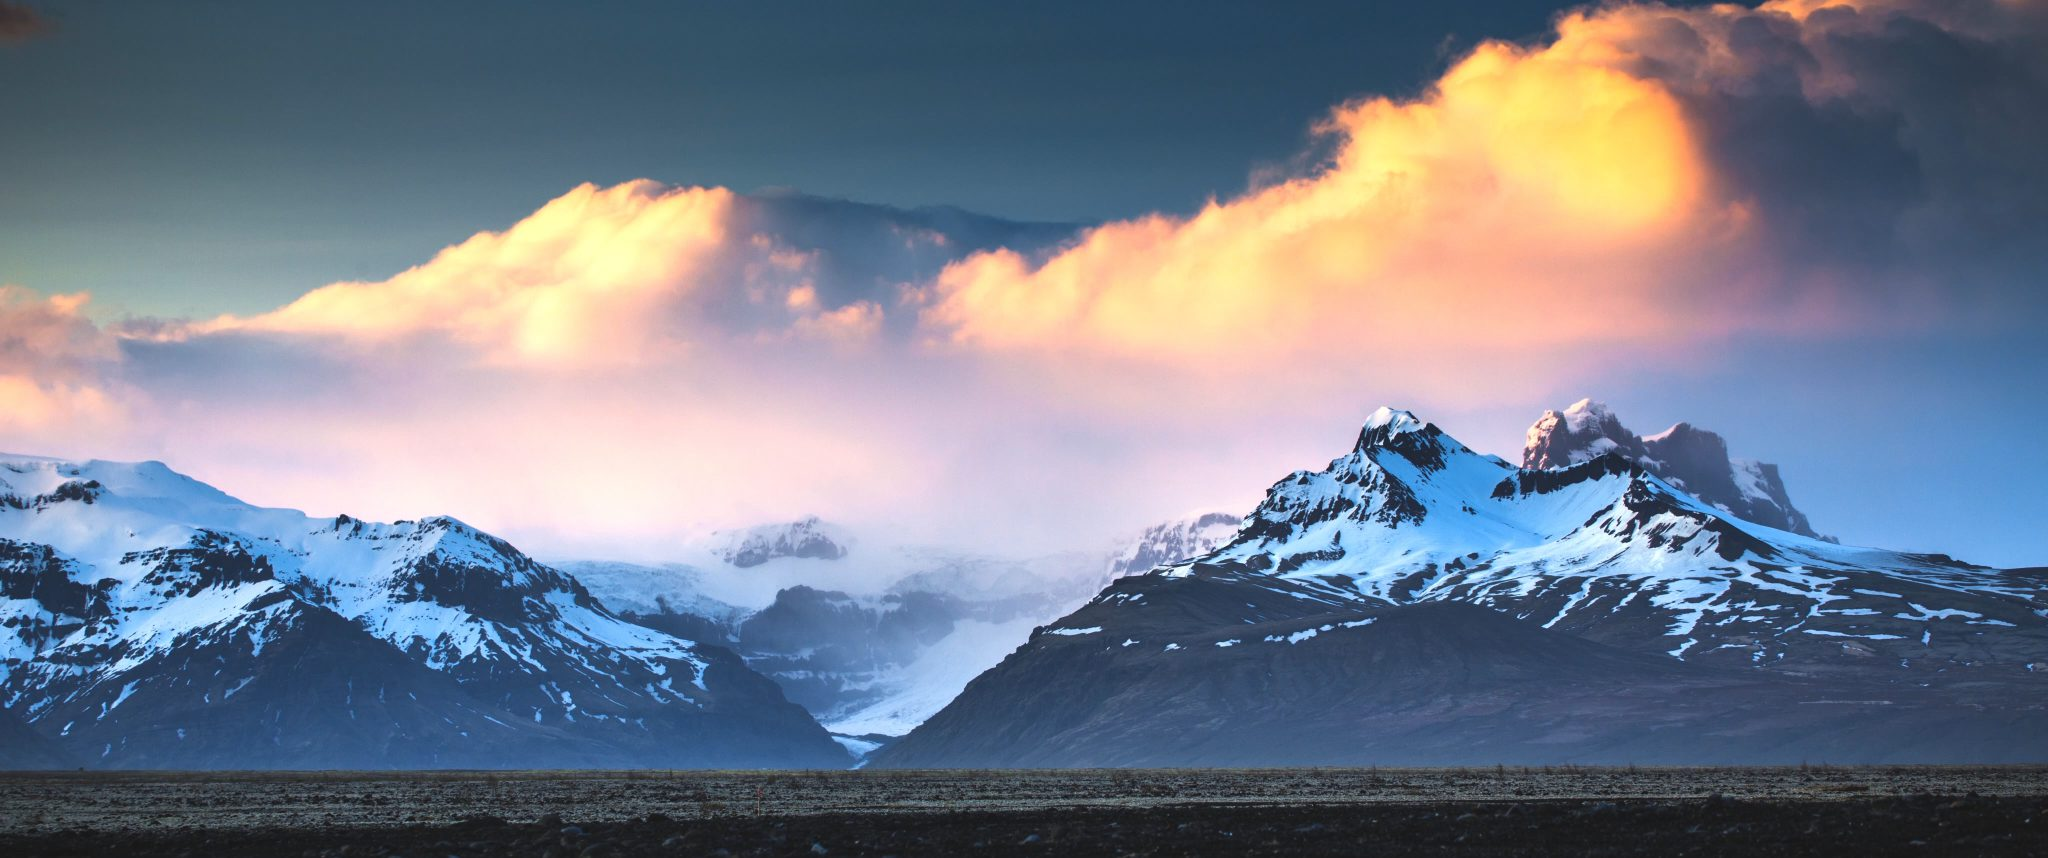 Sunset Panorama of snowy mountains